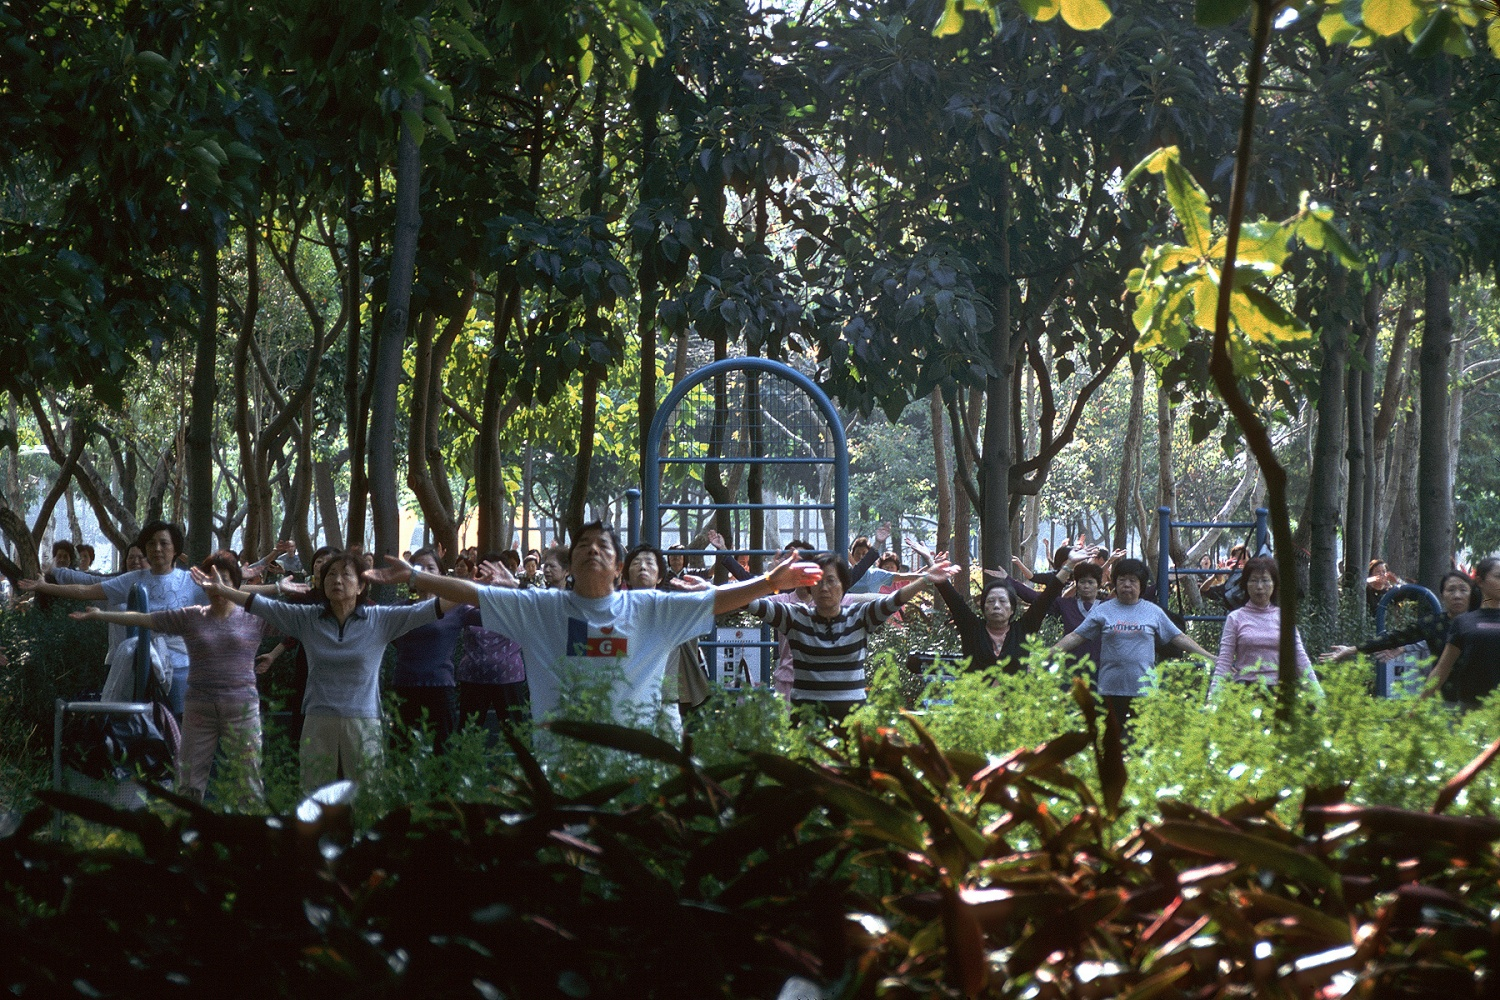 taichigroup Tai Chi Group, 